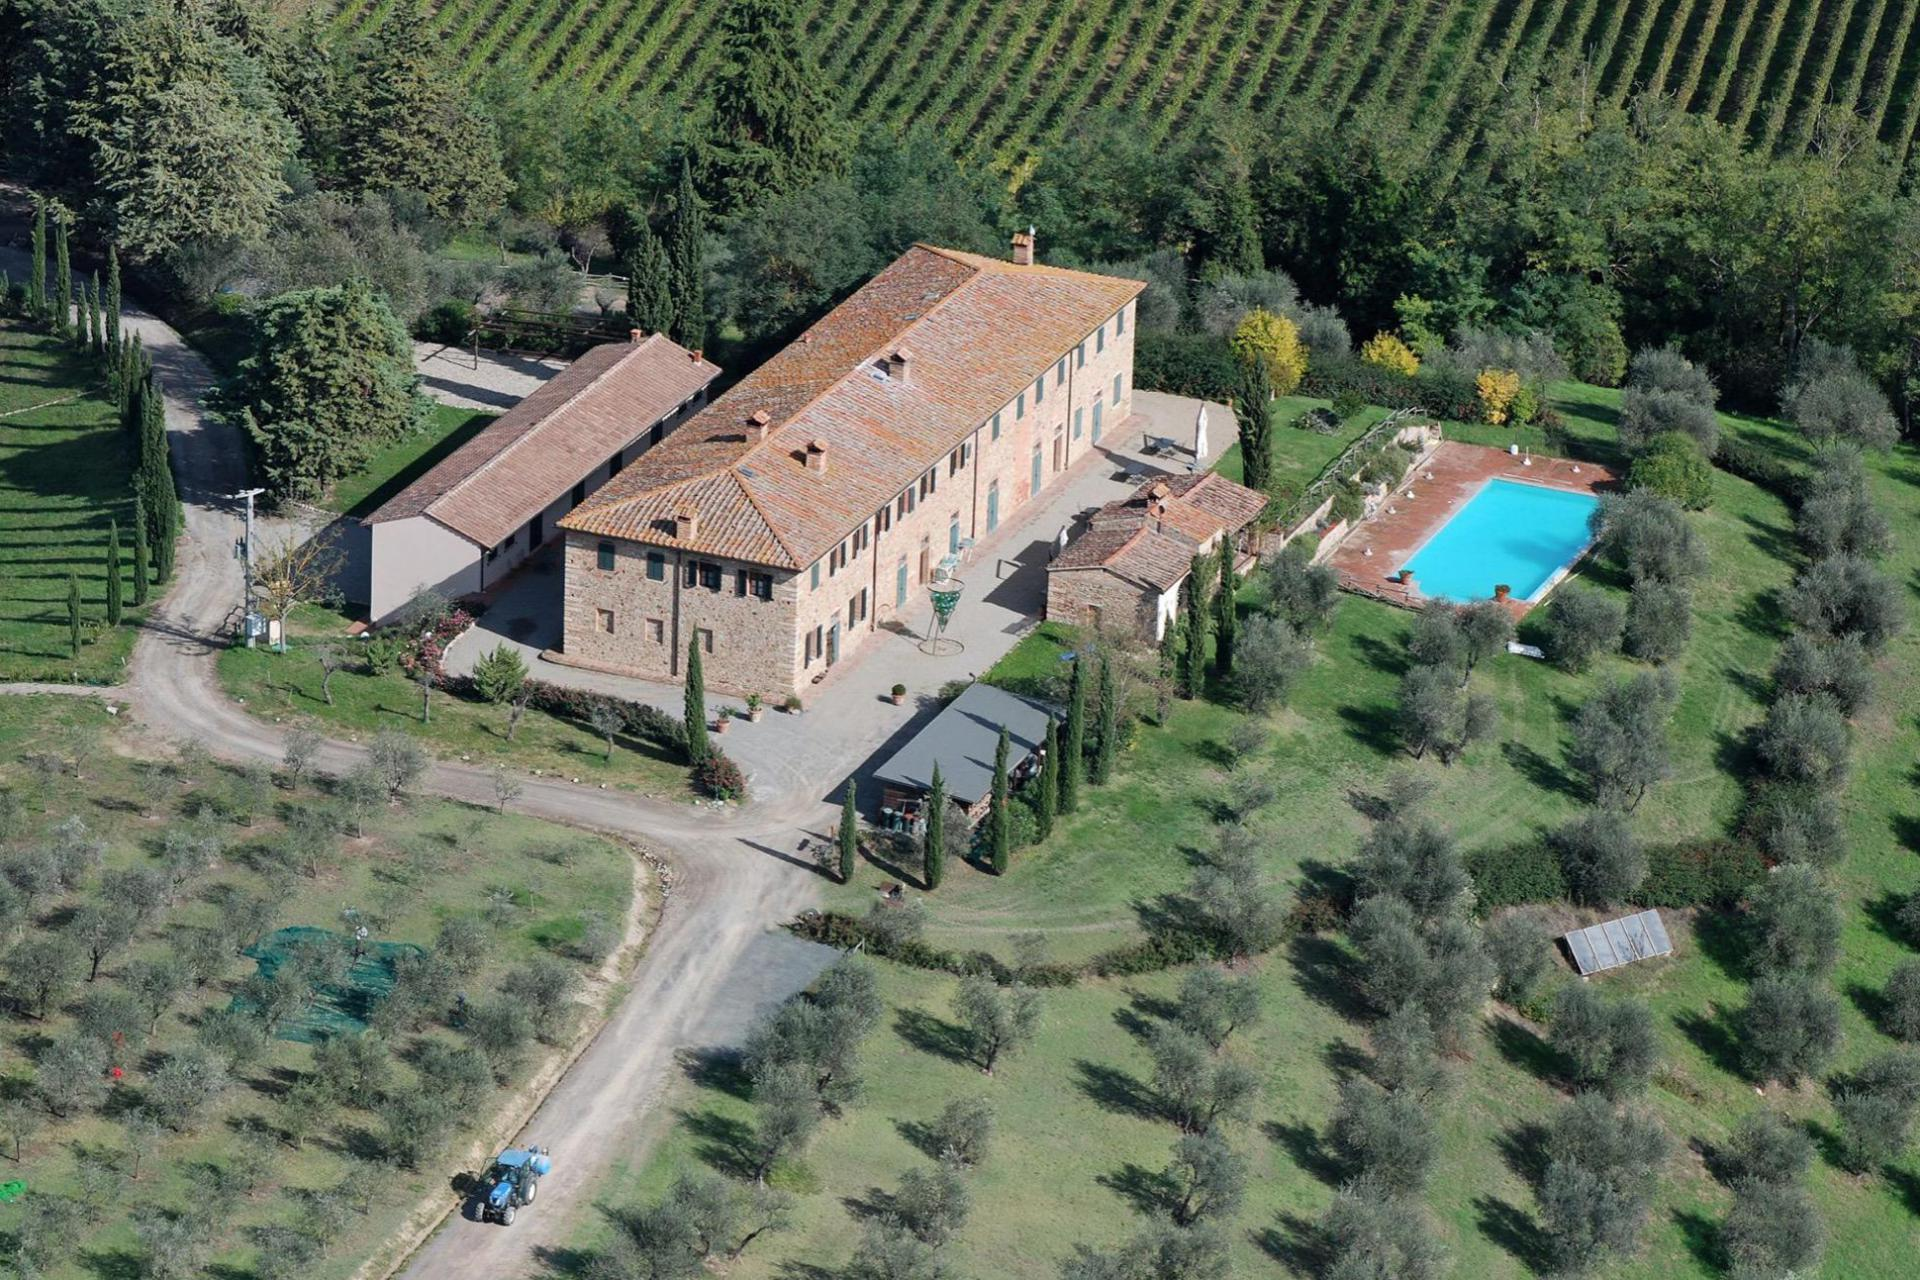 Agriturismo Tuscany Child-friendly agriturismo in Tuscany with pizza night